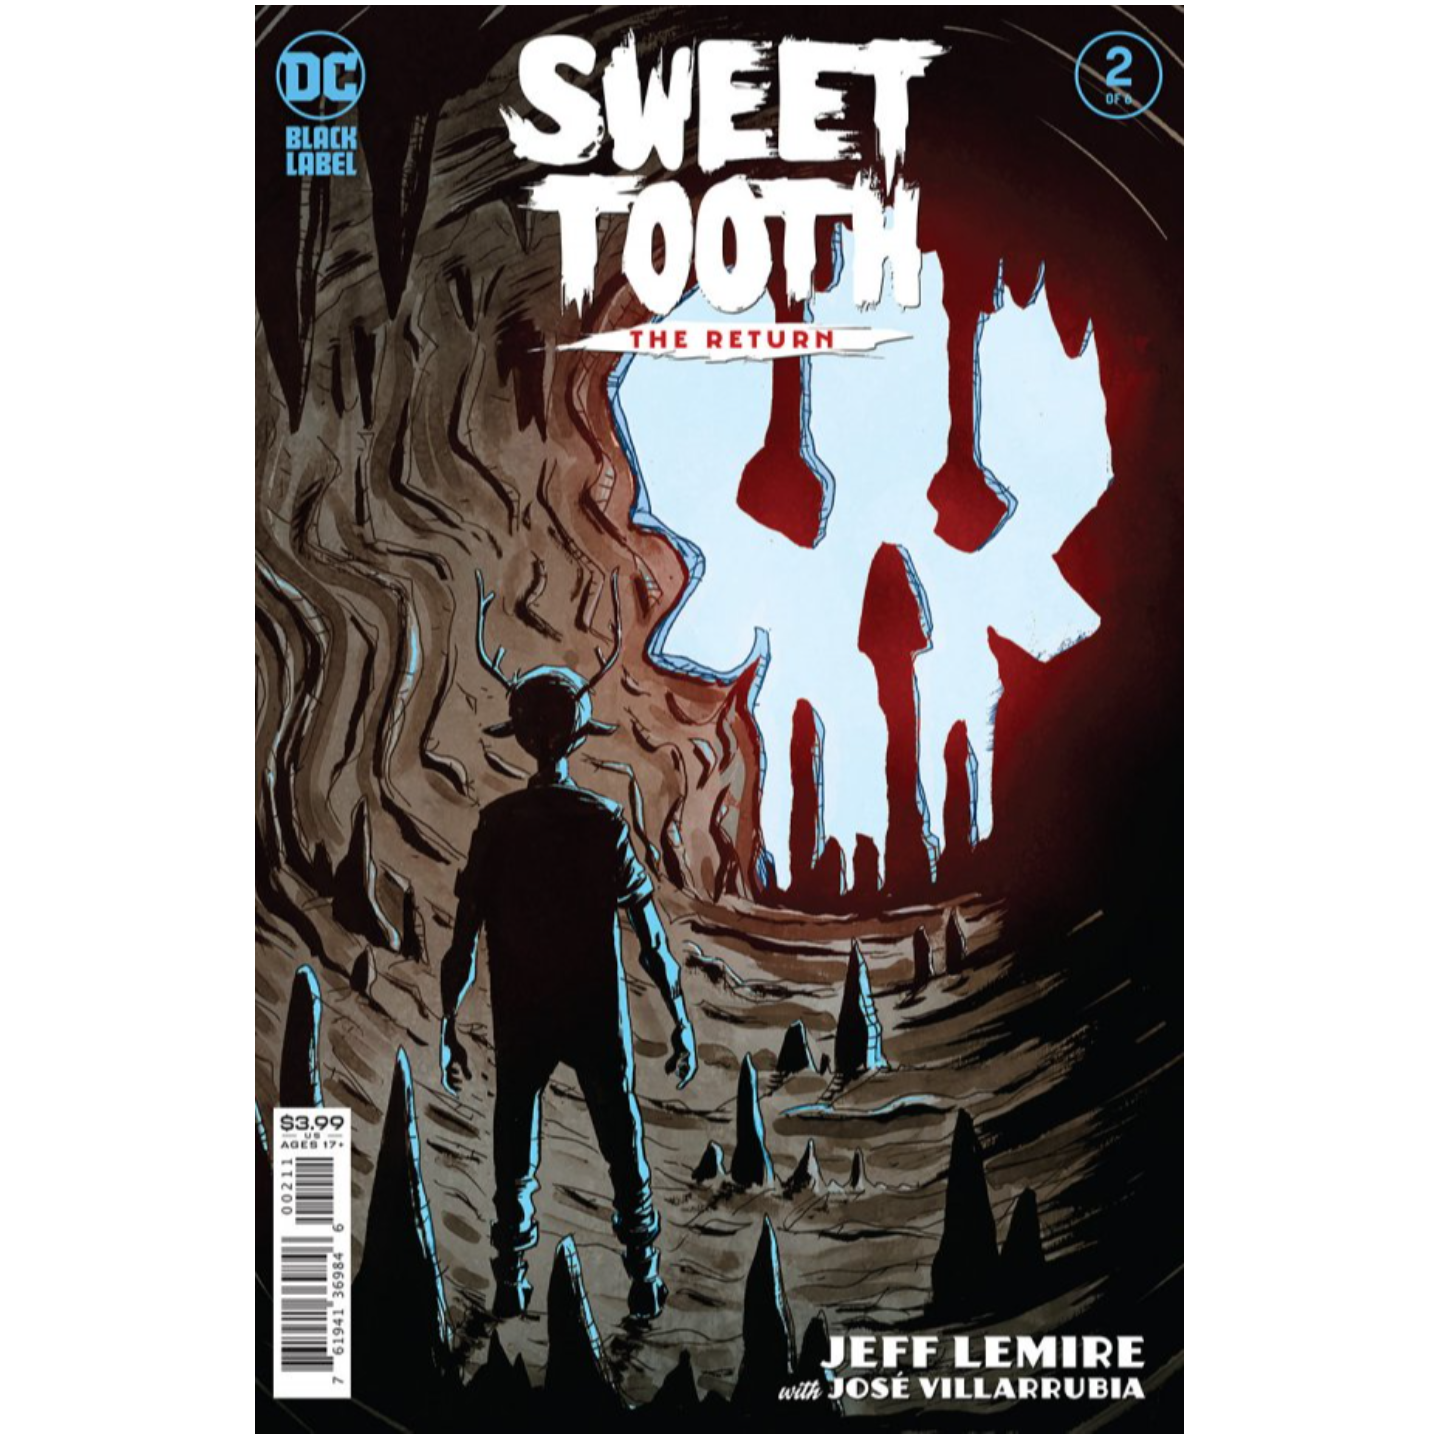 SWEET TOOTH THE RETURN #2 (OF 6) (MR)